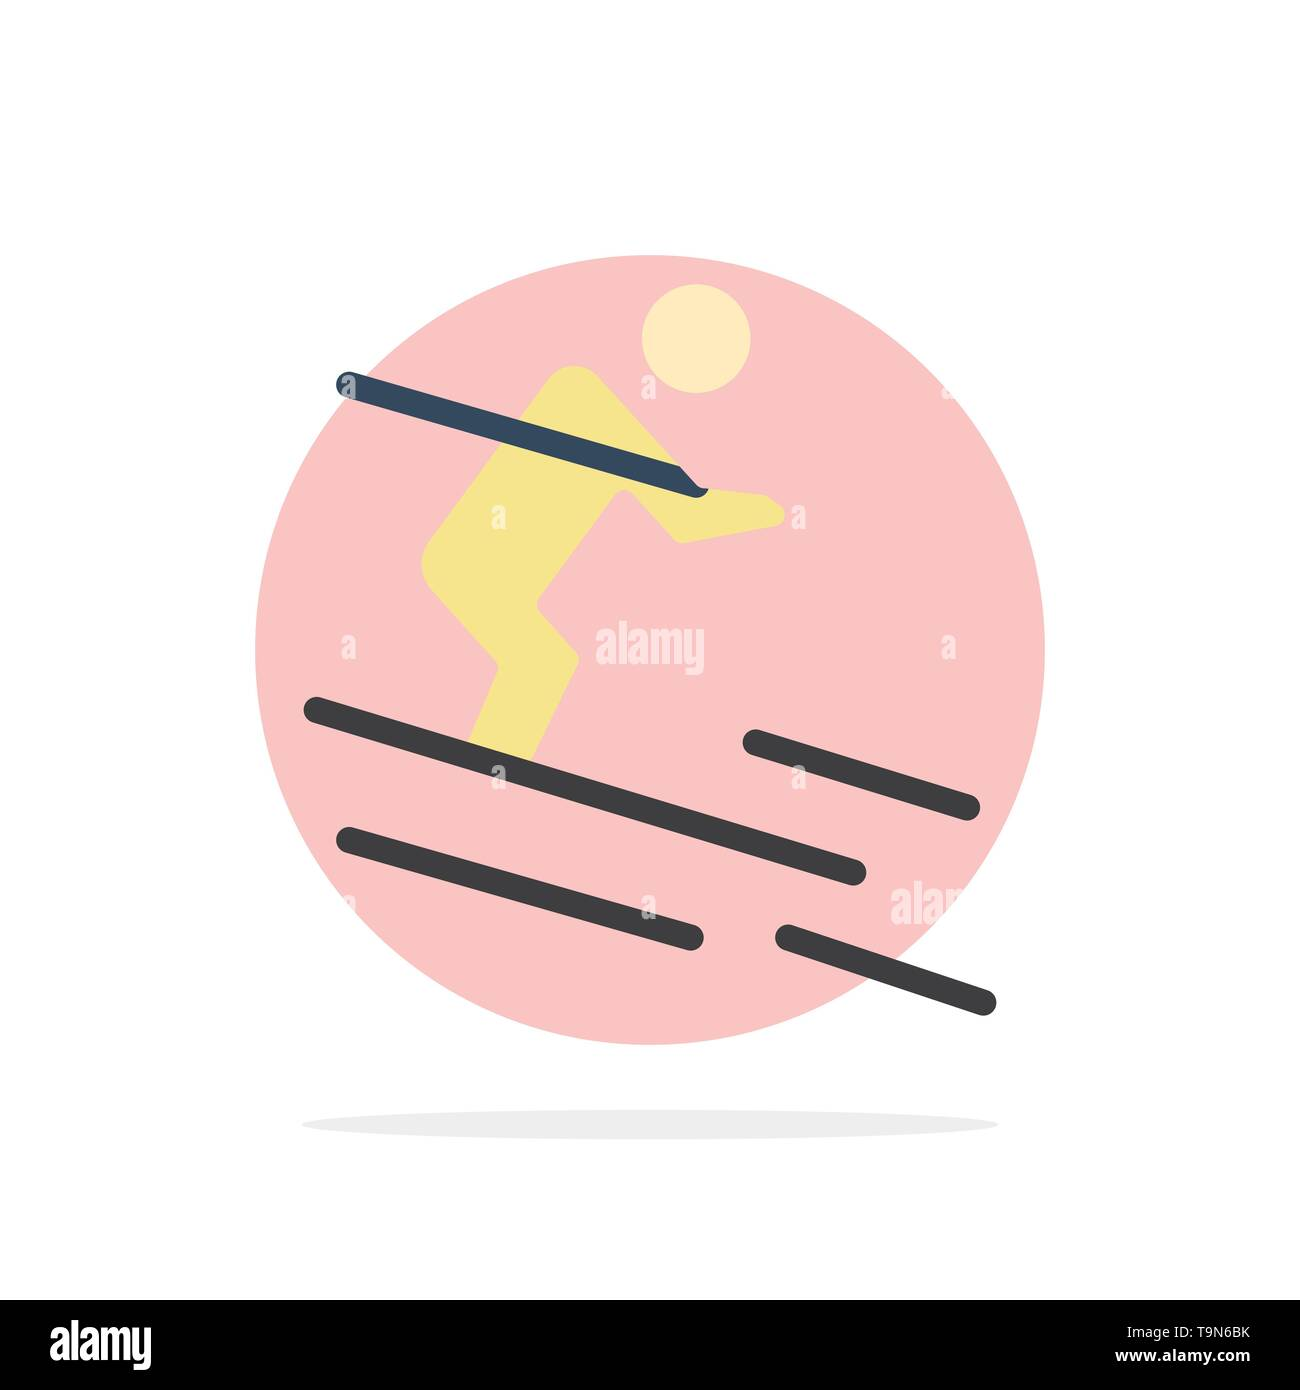 Activity, Ski, Skiing, Sportsman Abstract Circle Background Flat color Icon - Stock Image